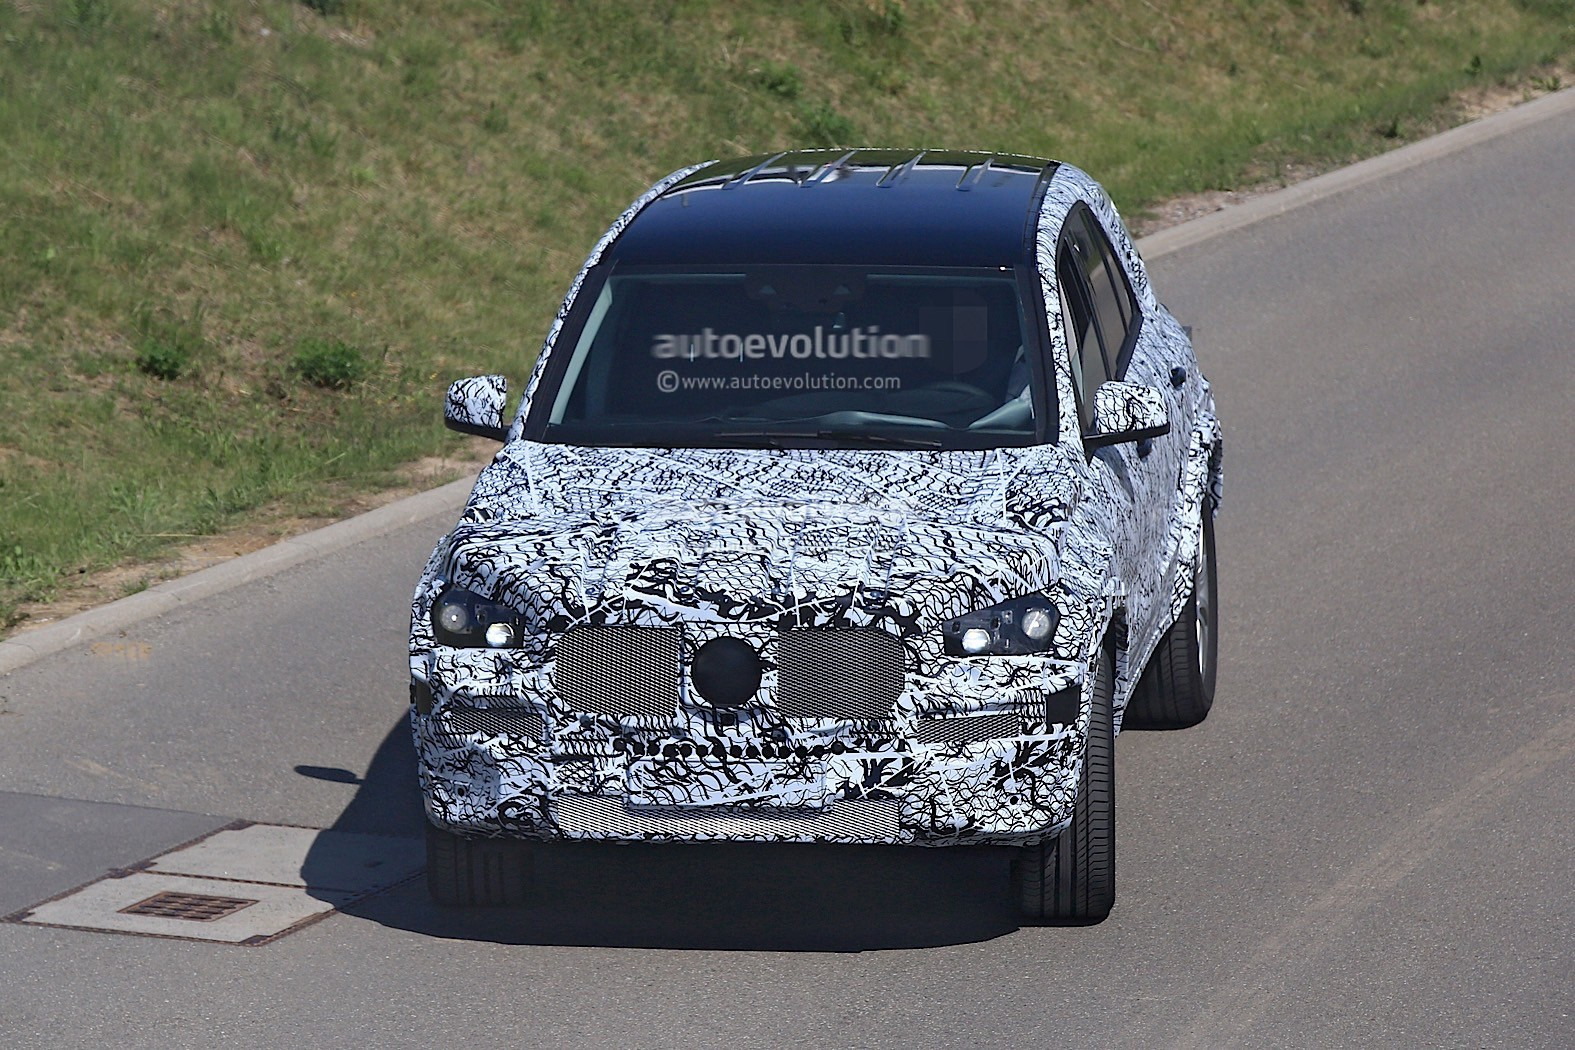 2018-mercedes-benz-glb-starts-testing-with-production-body_1-autonovosti.me-1